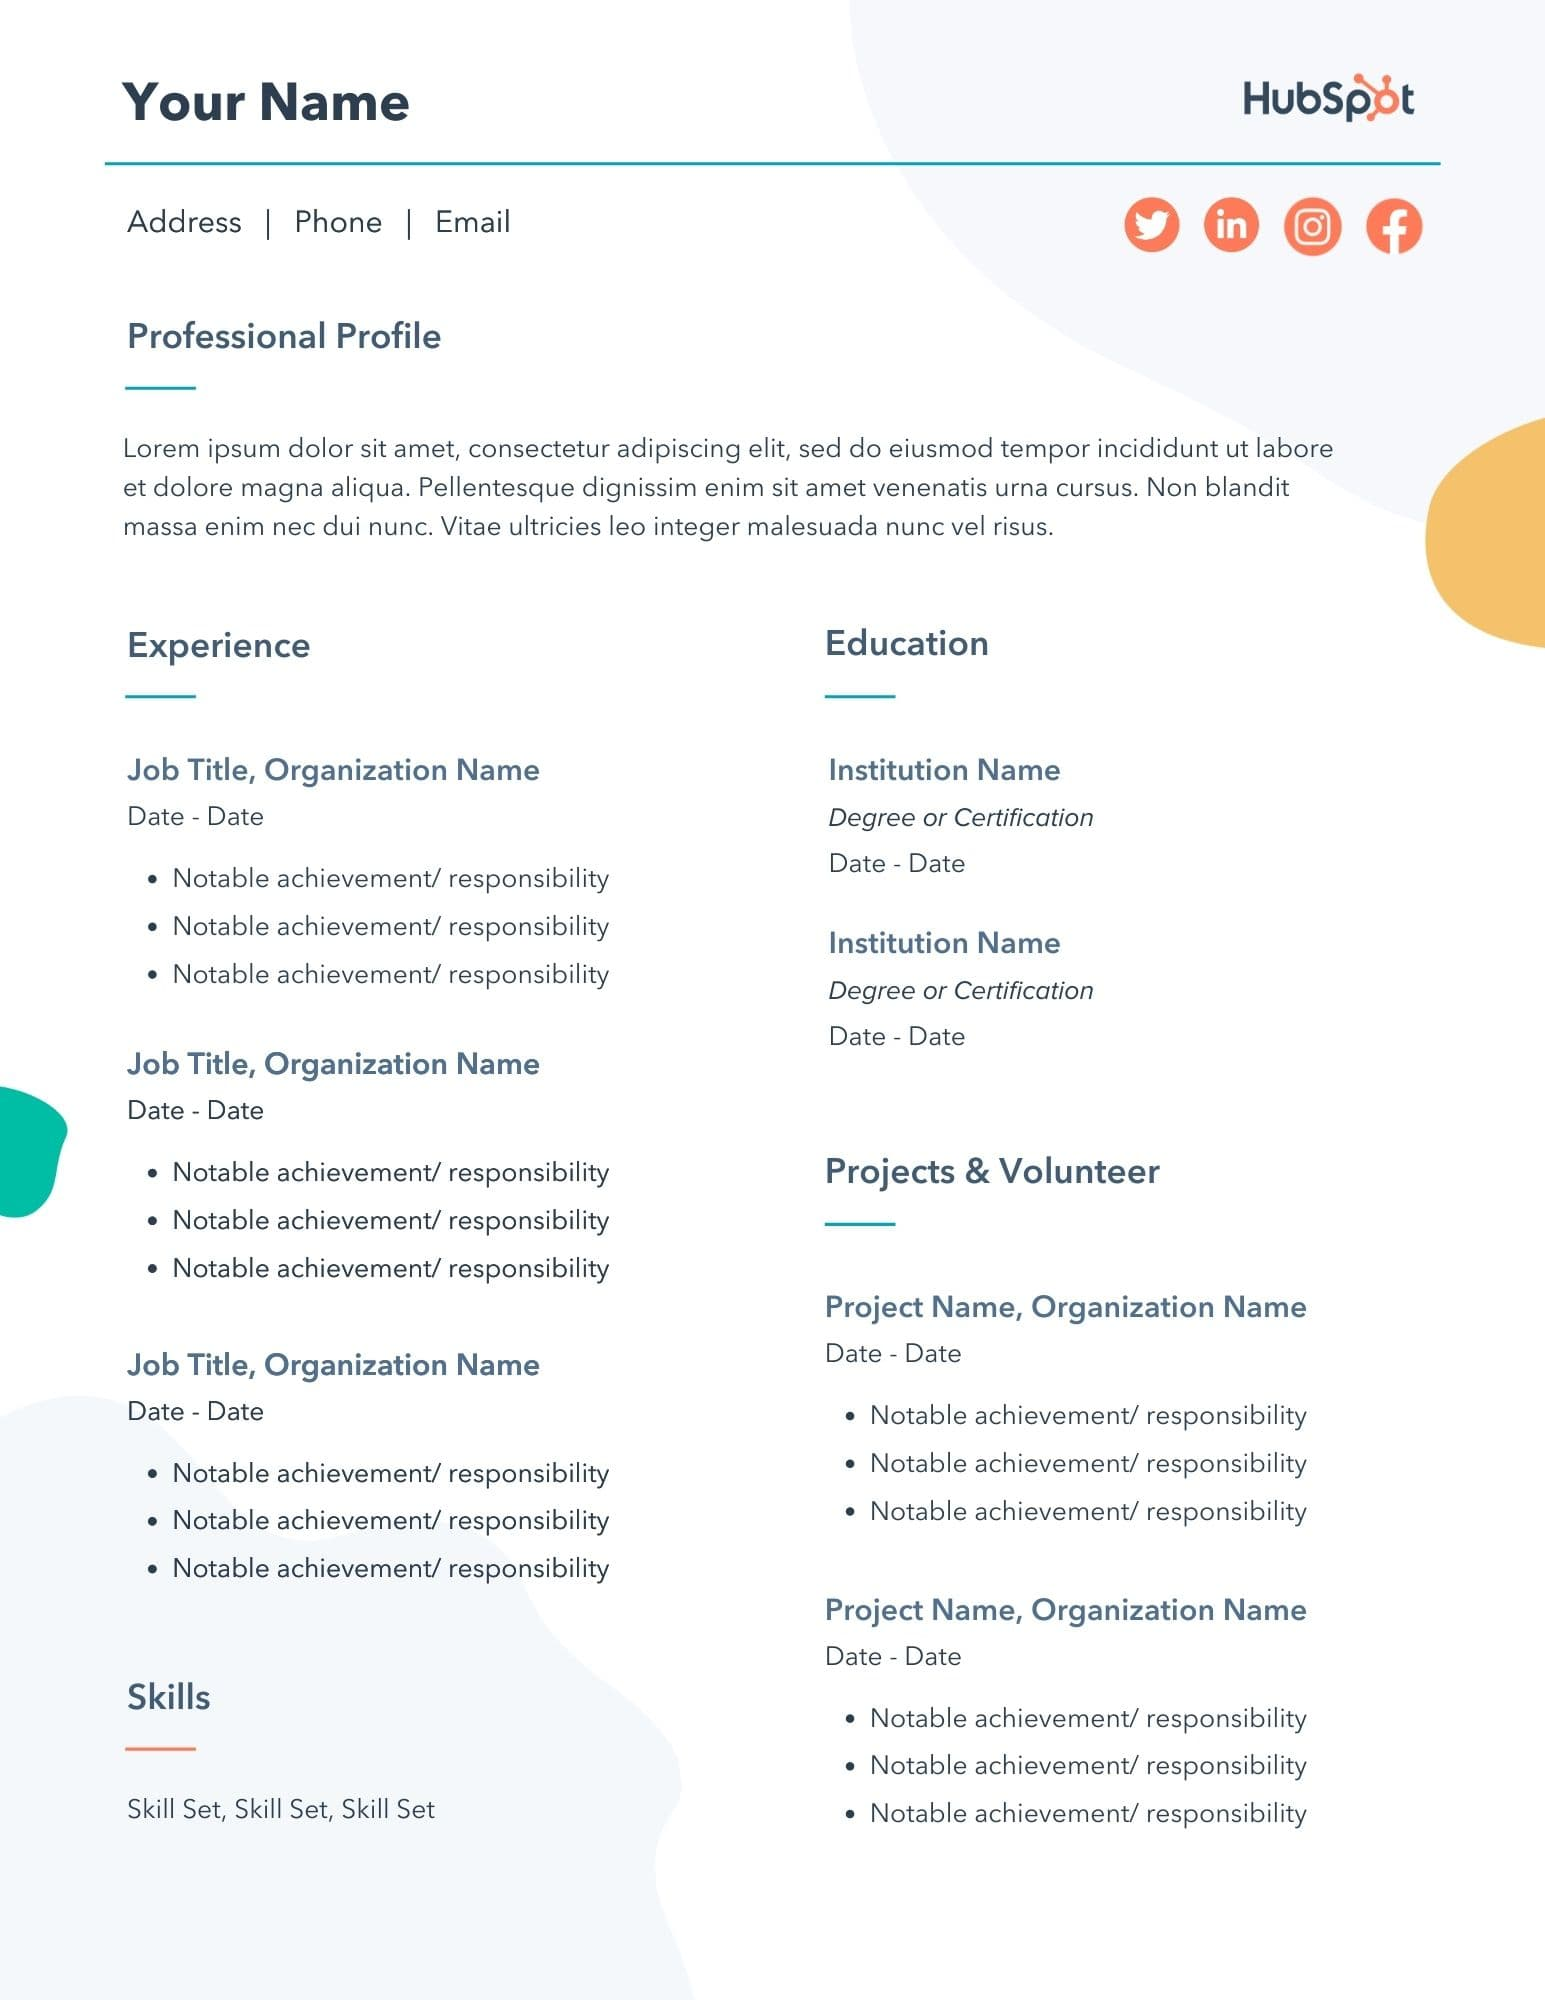 free resume templates for microsoft word to make your own best text format template Resume Best Text Format For Resume